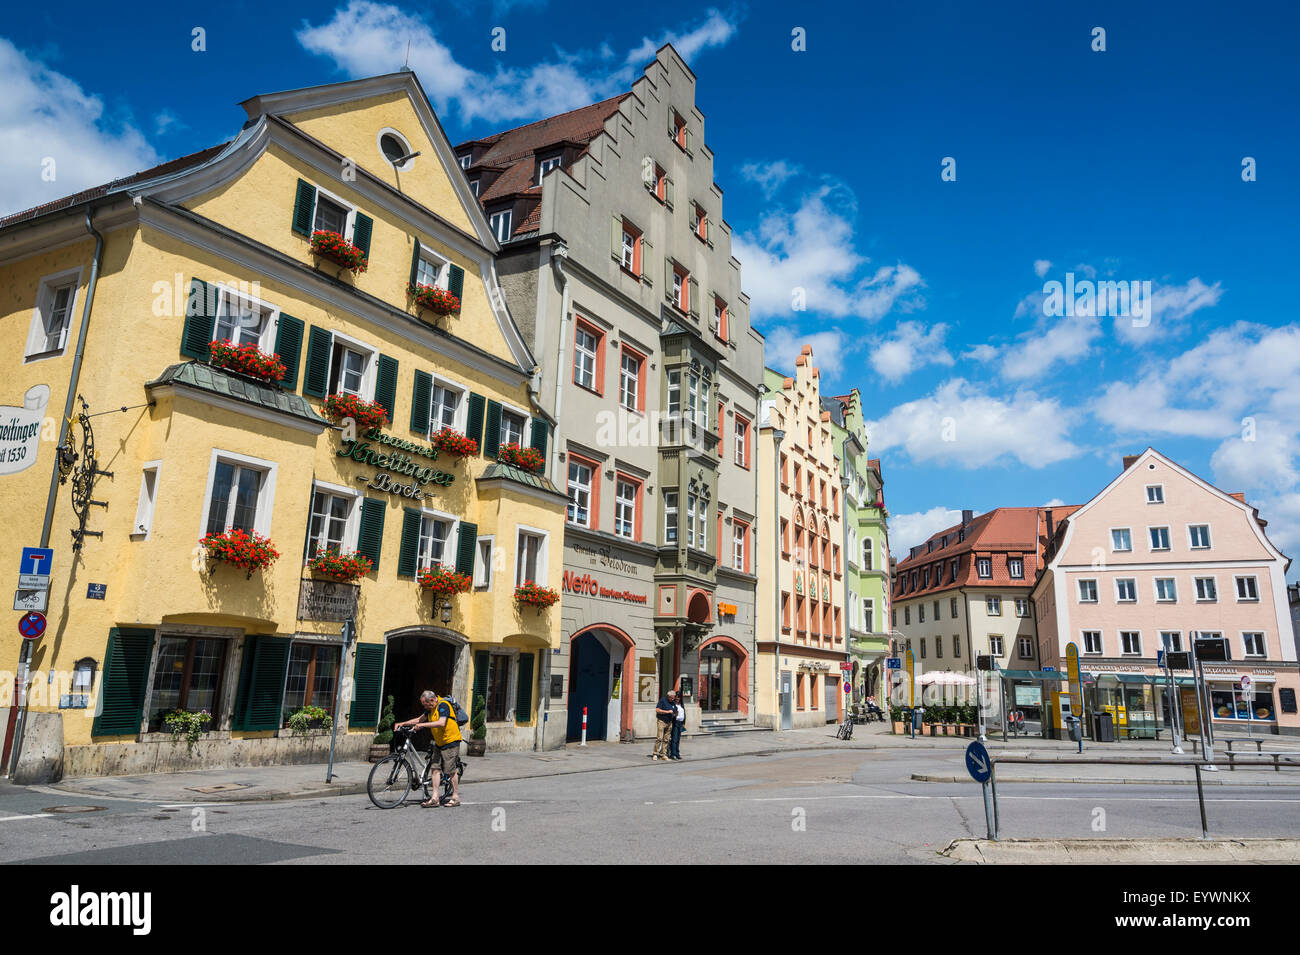 Old trader houses on Arnulfsplatz, a square in Regensburg, UNESCO World Heritage Site, Bavaria, Germany, Europe - Stock Image